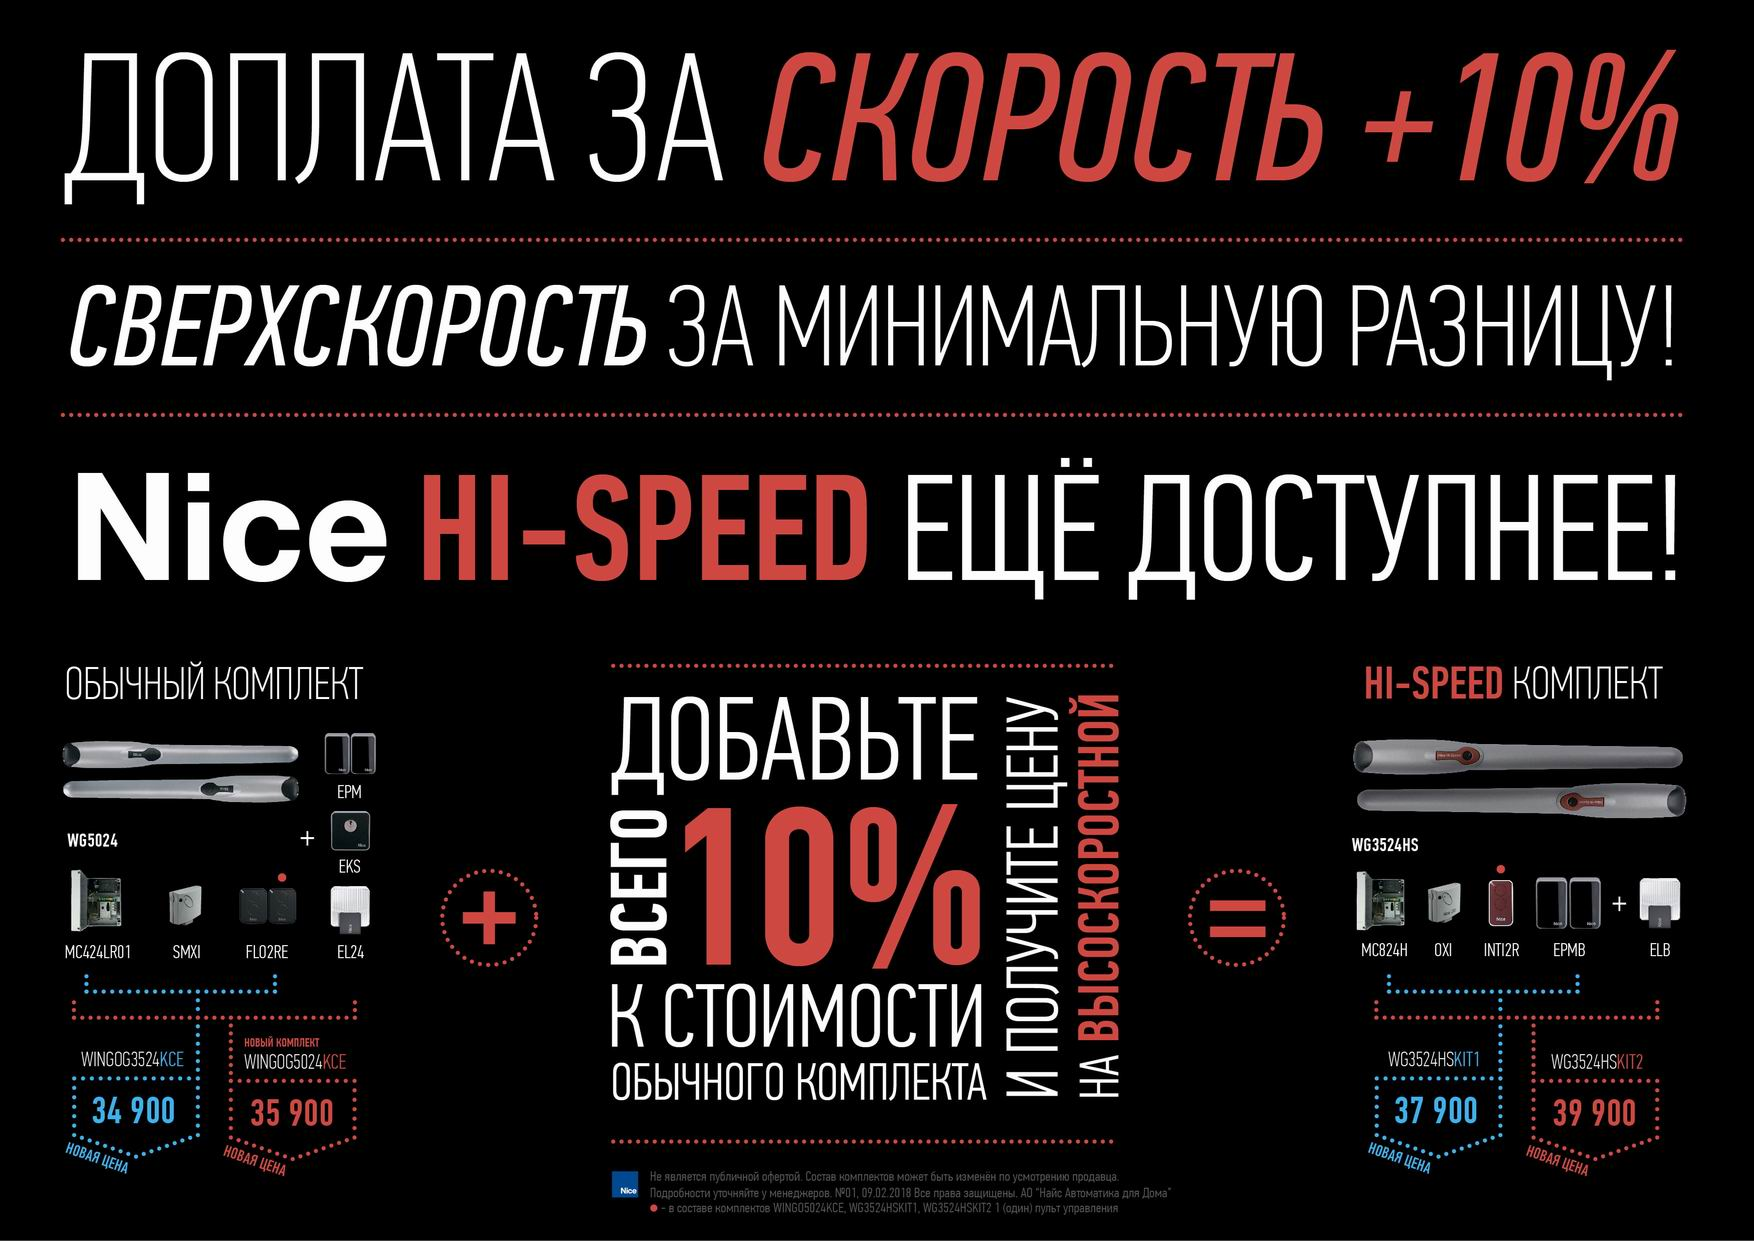 HISPEED Nice 10